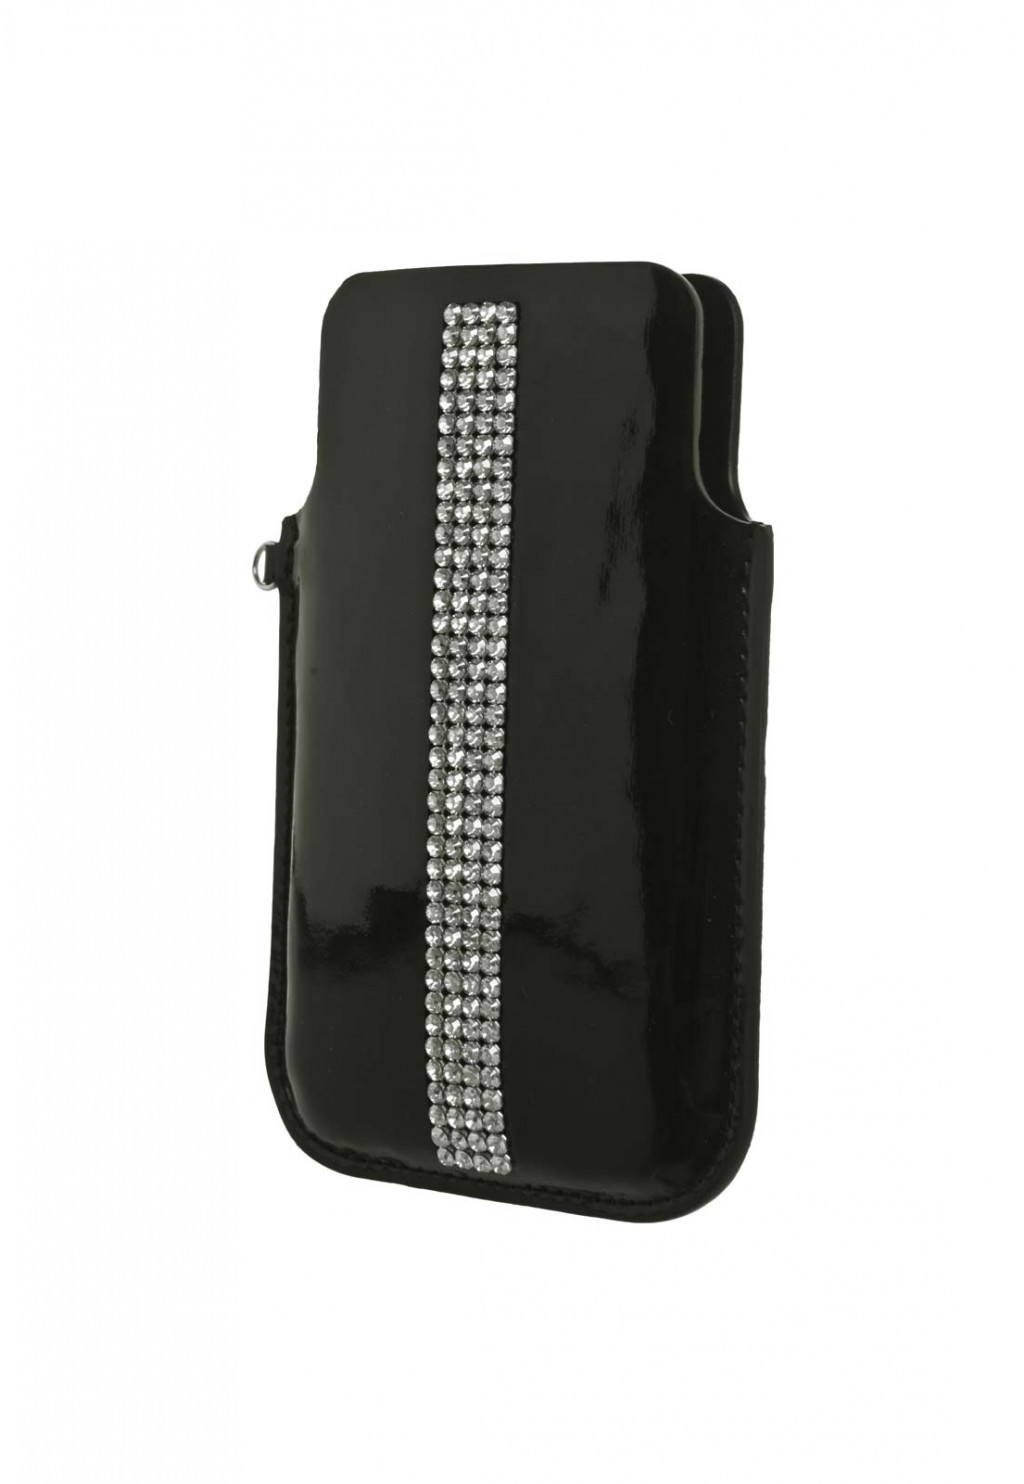 Swarovski-Case-iPhone 1110787 65$+%